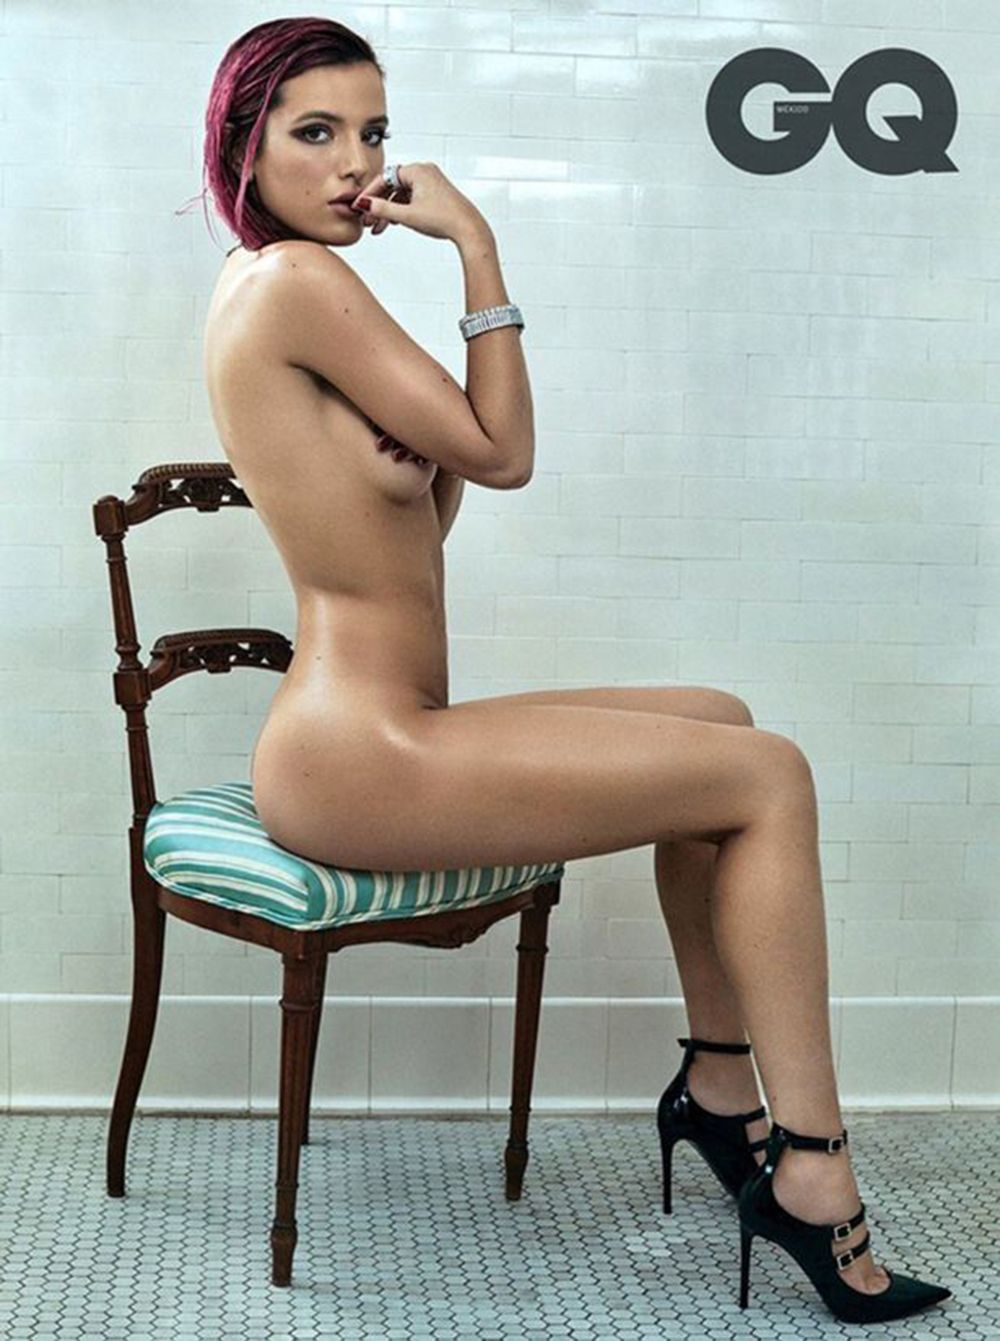 24 of the nakedest celebrity photoshoots - celebs stripping off for magazine  photoshoots